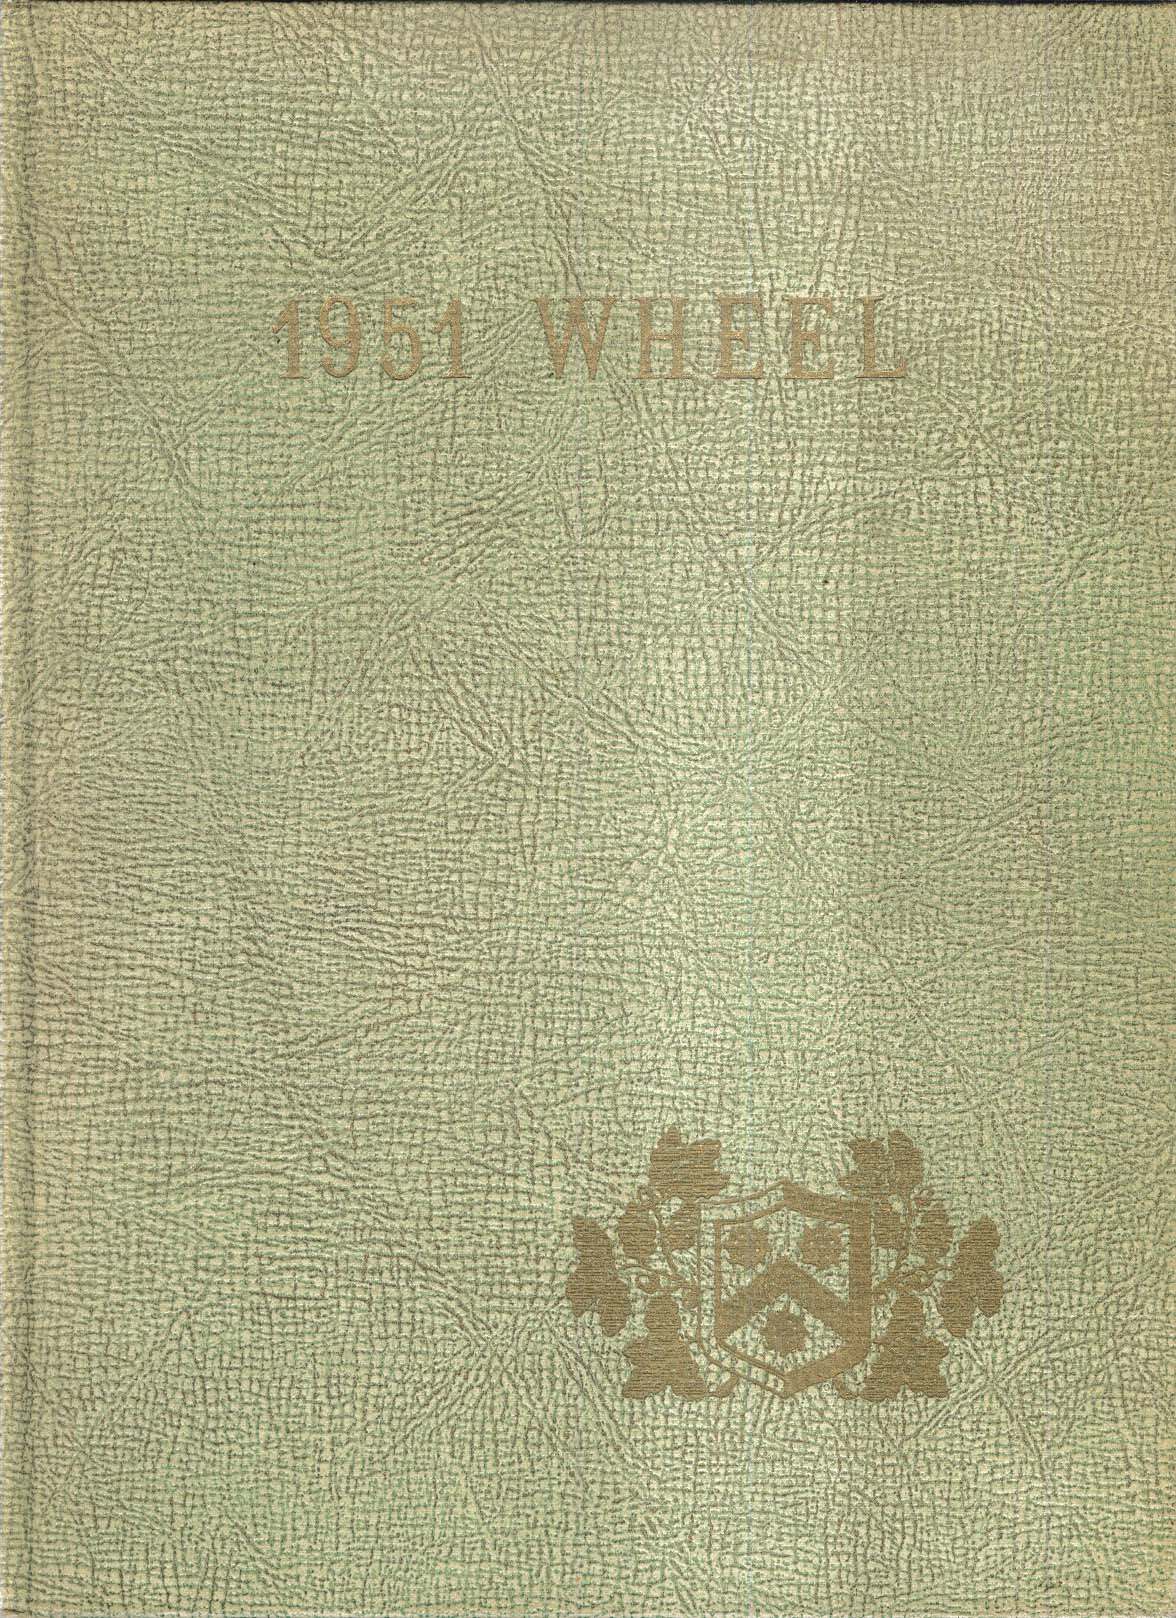 Image for 1951 Wheel Wheelock College 132 Riverway Boston Massachusetts MA Yearbook